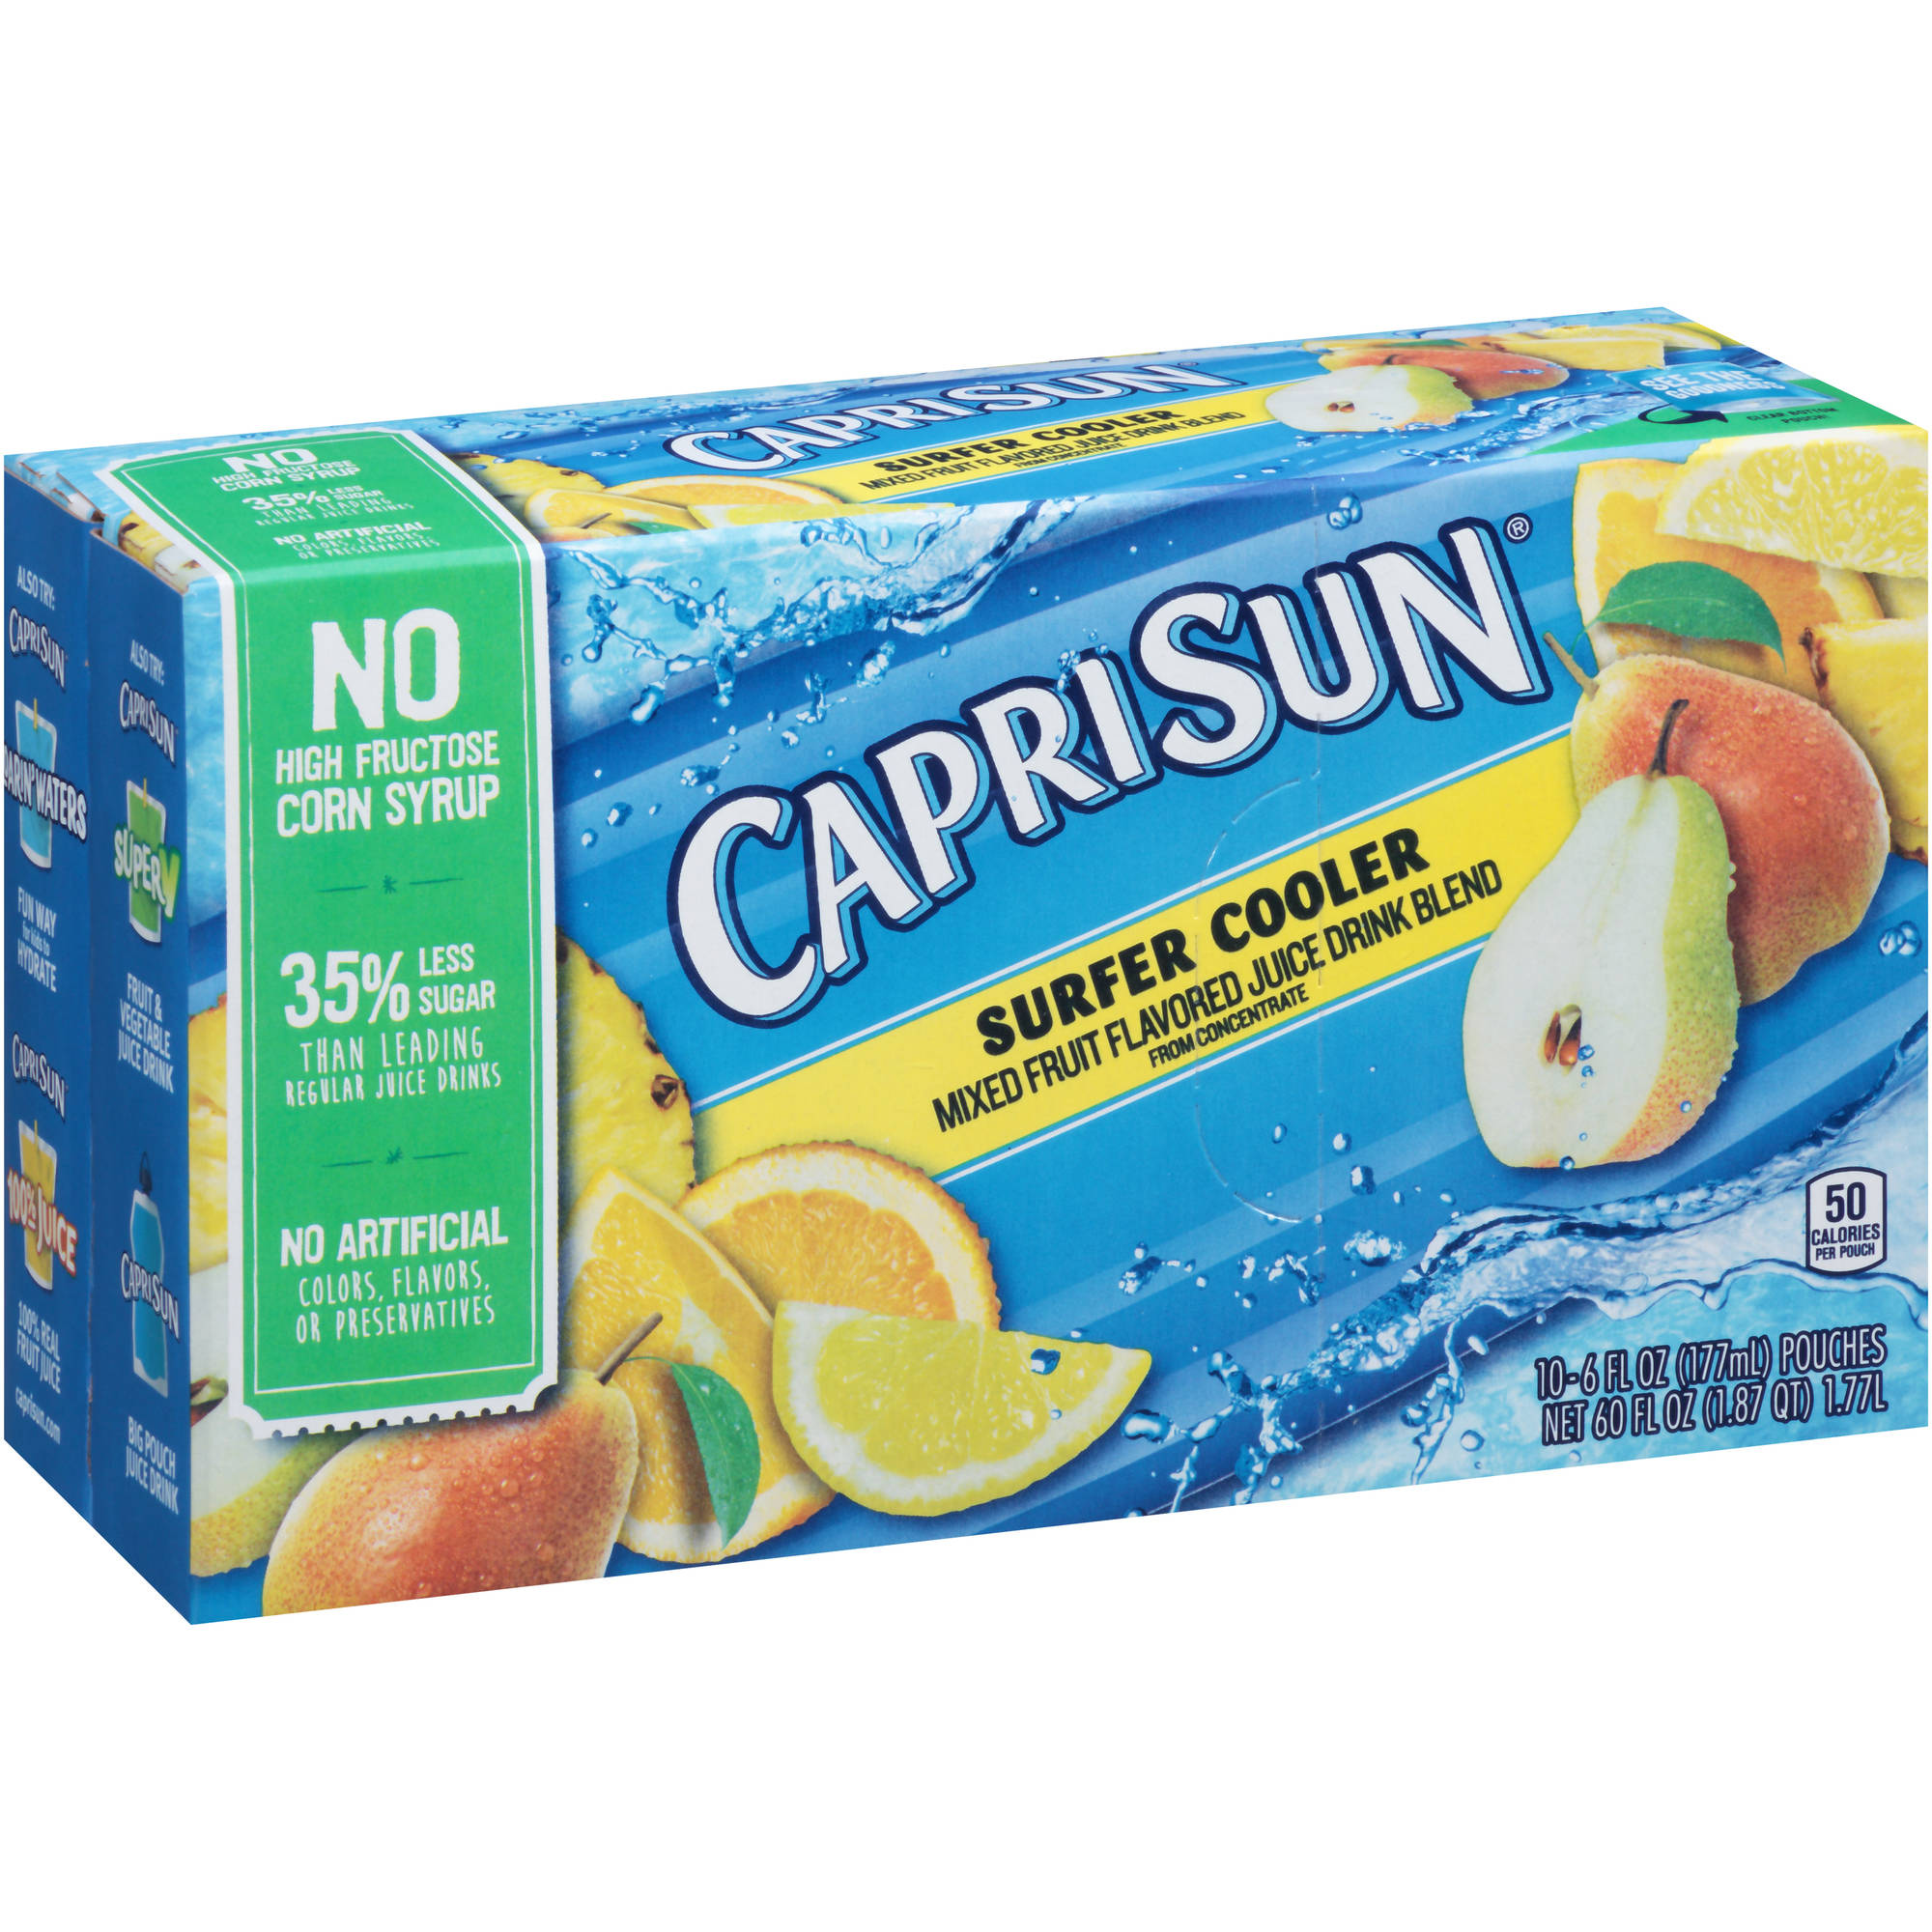 Capri Sun Surfer Cooler Juice Drink, 6 fl oz, 10 count